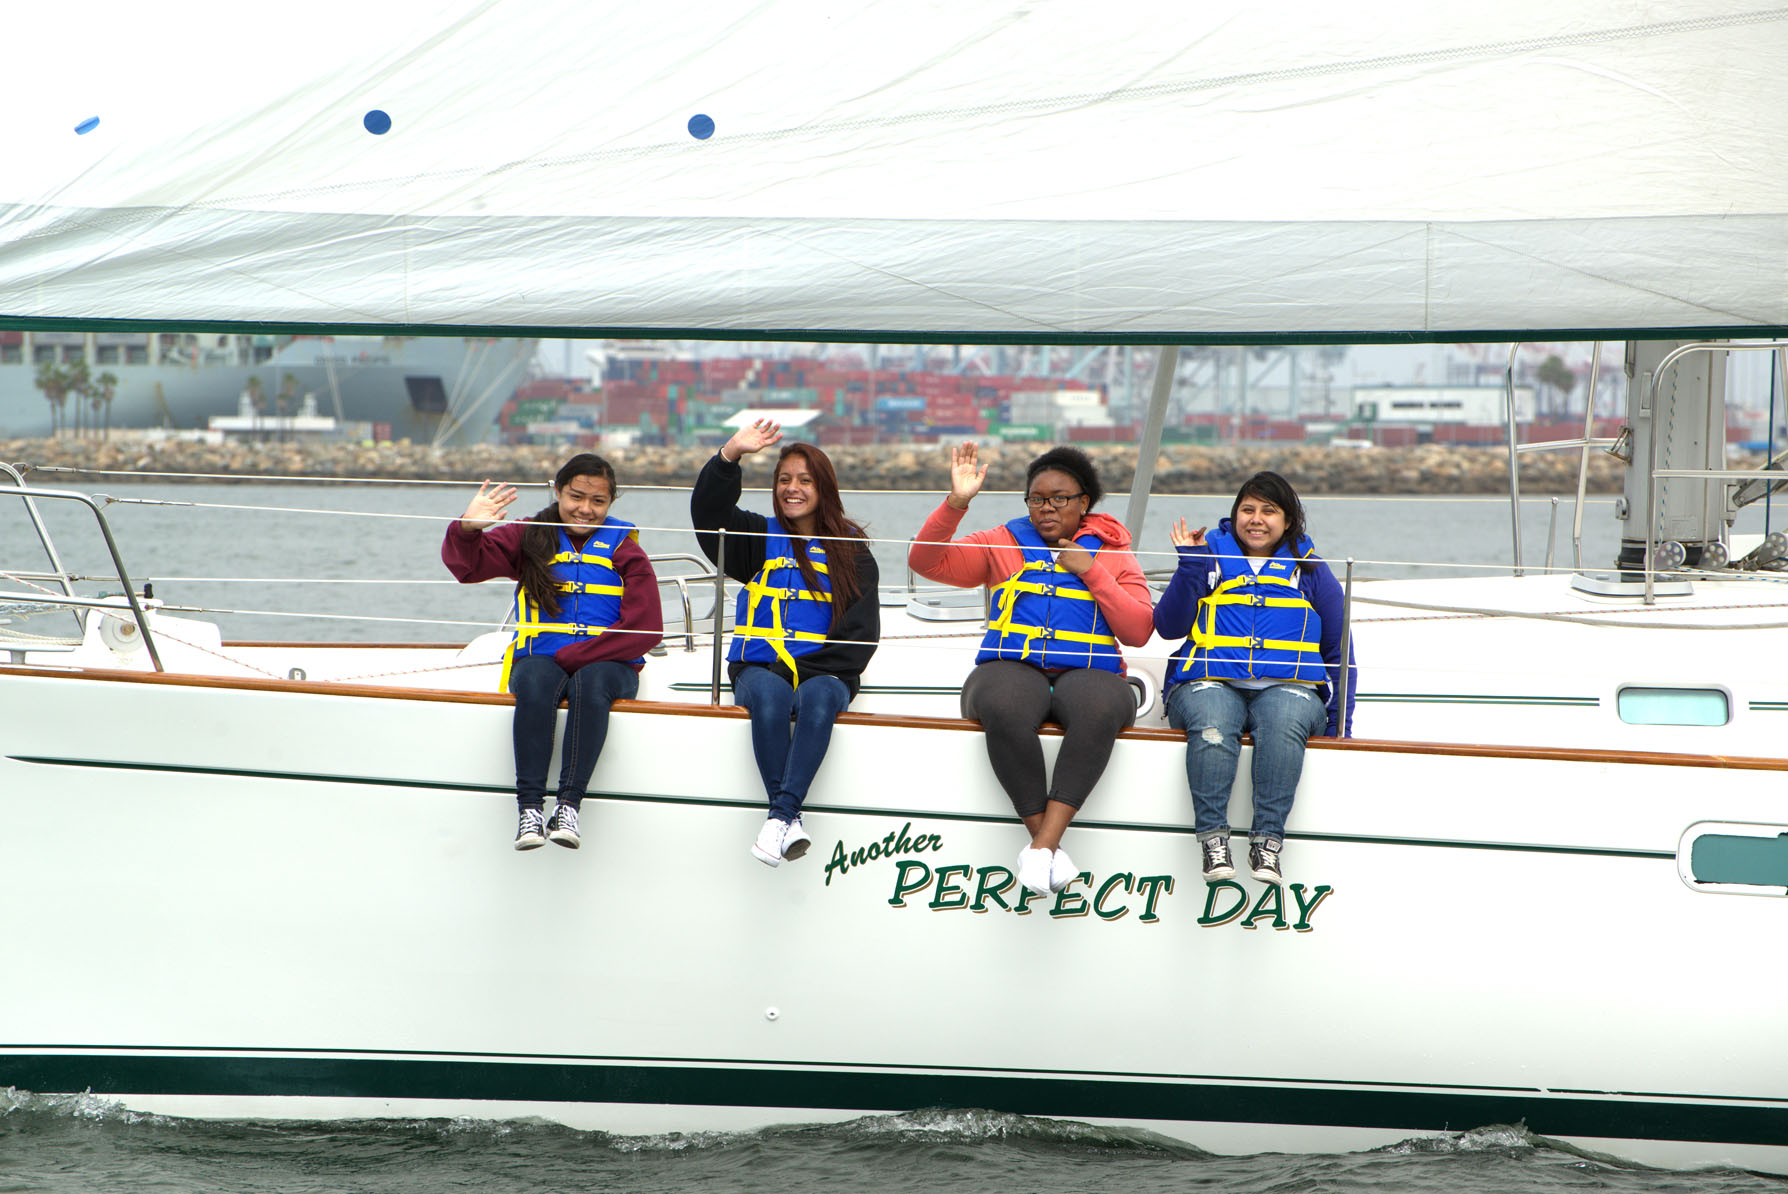 Panthers at Sea sail in annual event